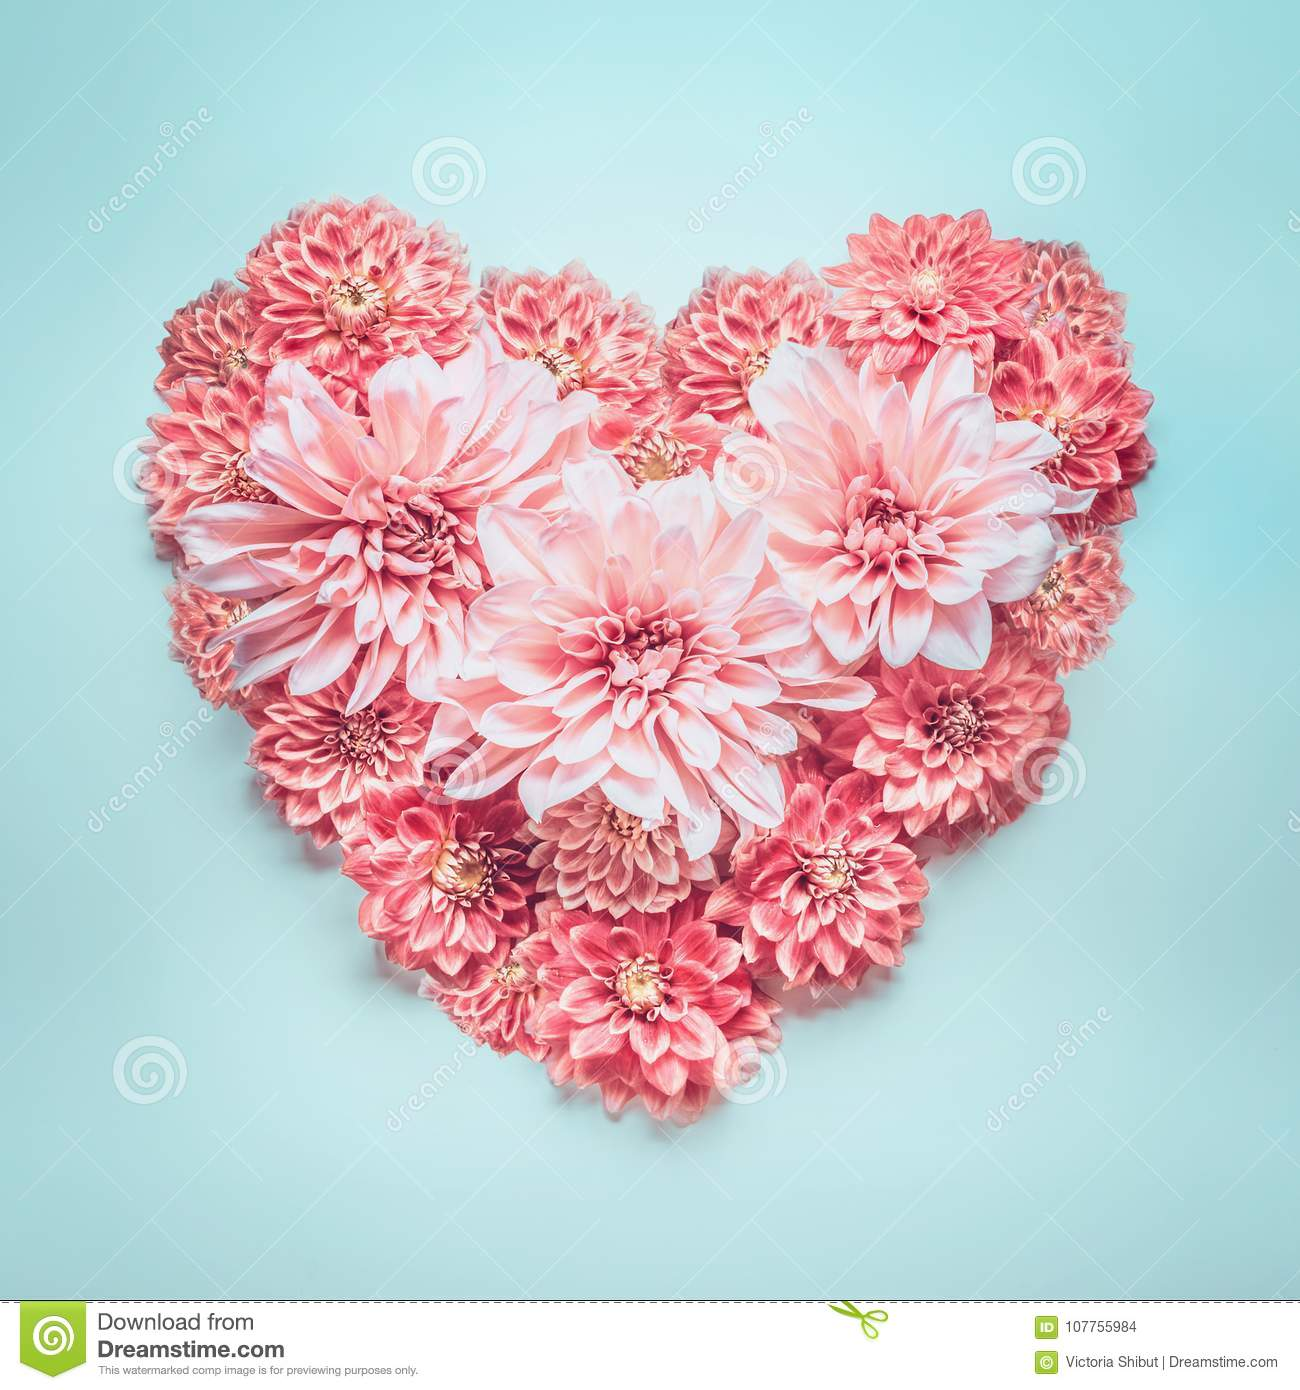 Pastel color heart made of lovely pink flowers on turquoise blue download comp mightylinksfo